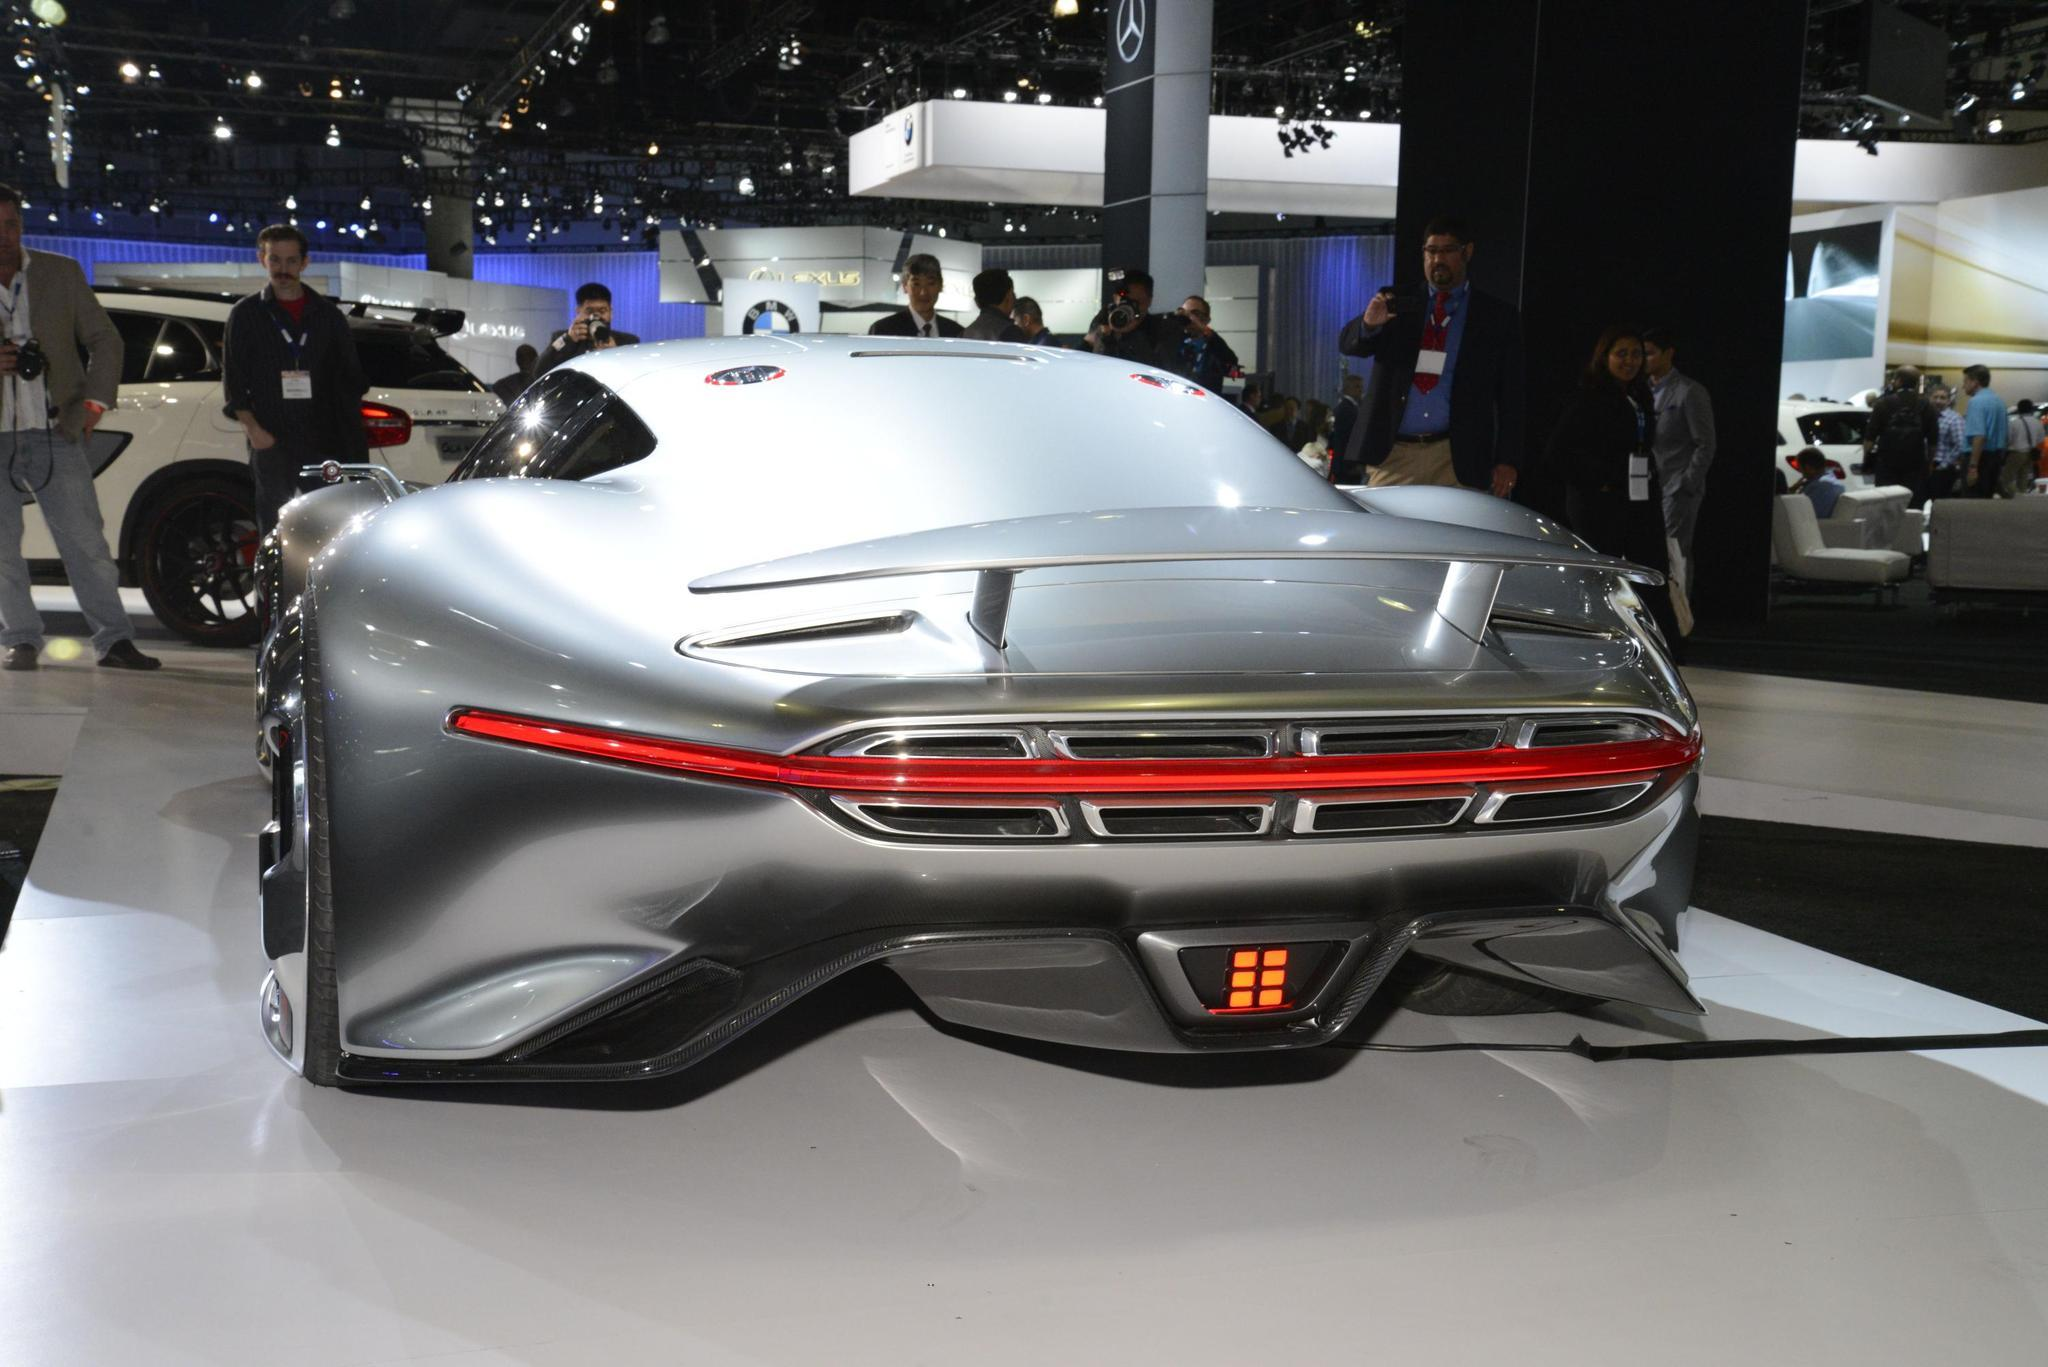 Cool or crazy concept cars?